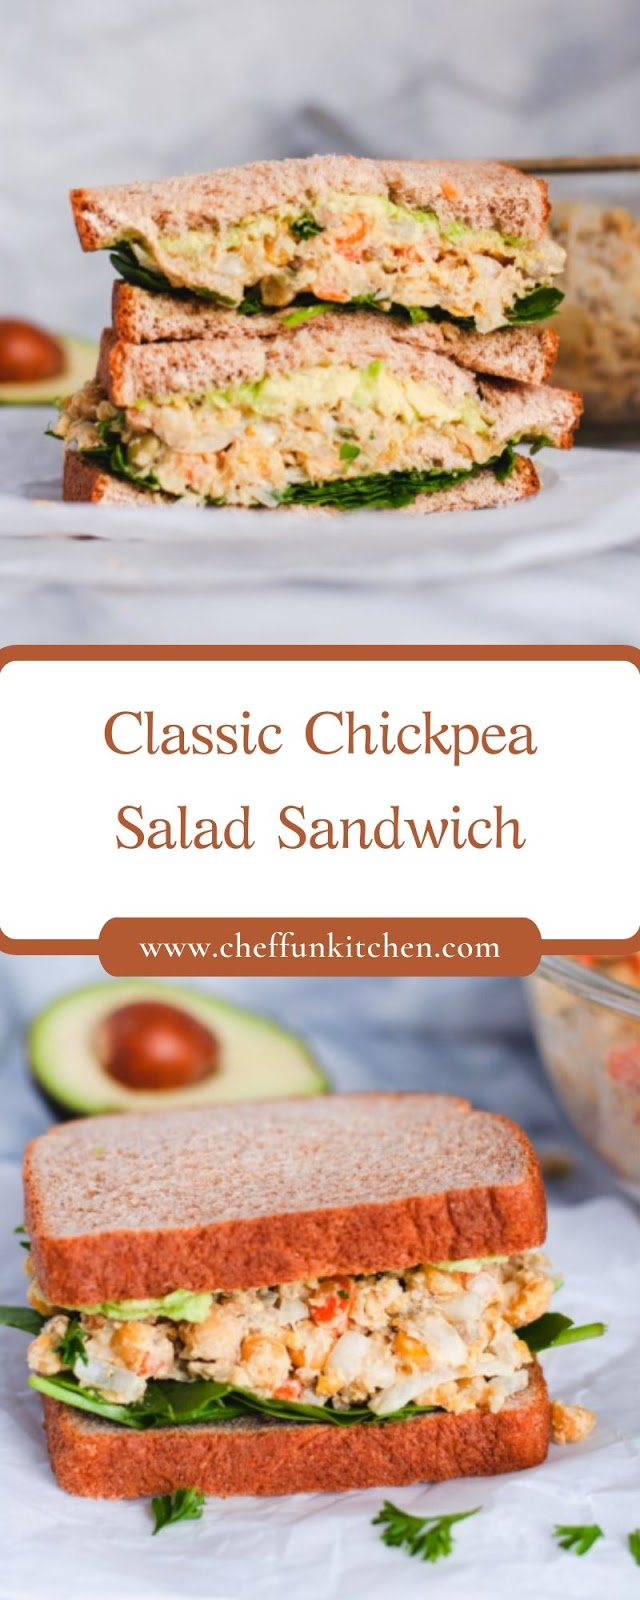 Classic Chickpea Salad Sandwich